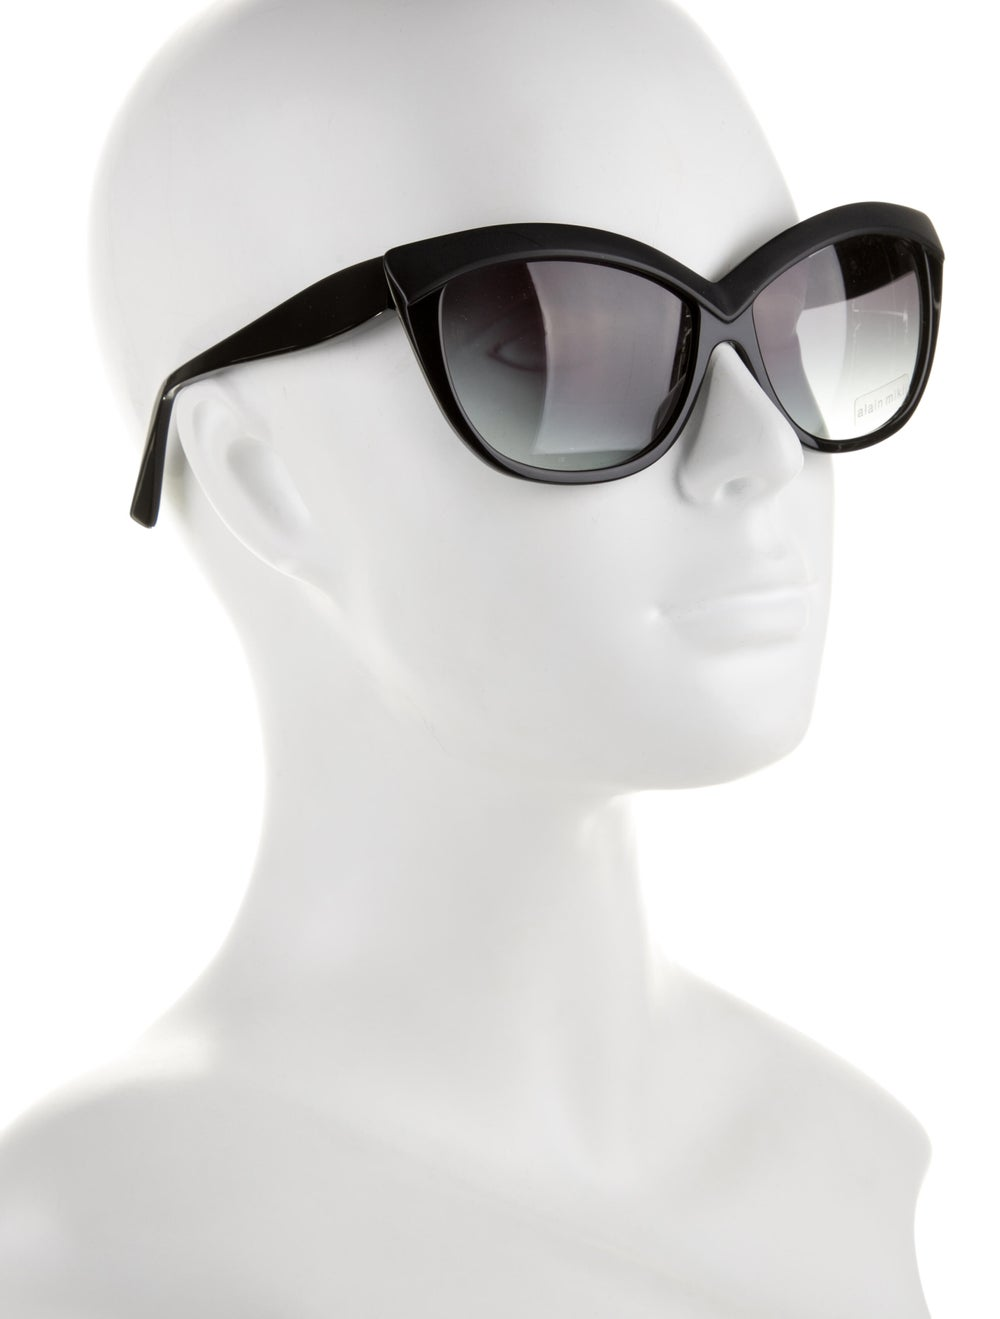 Alain Mikli Cat-Eye Tinted Sunglasses Black - image 4